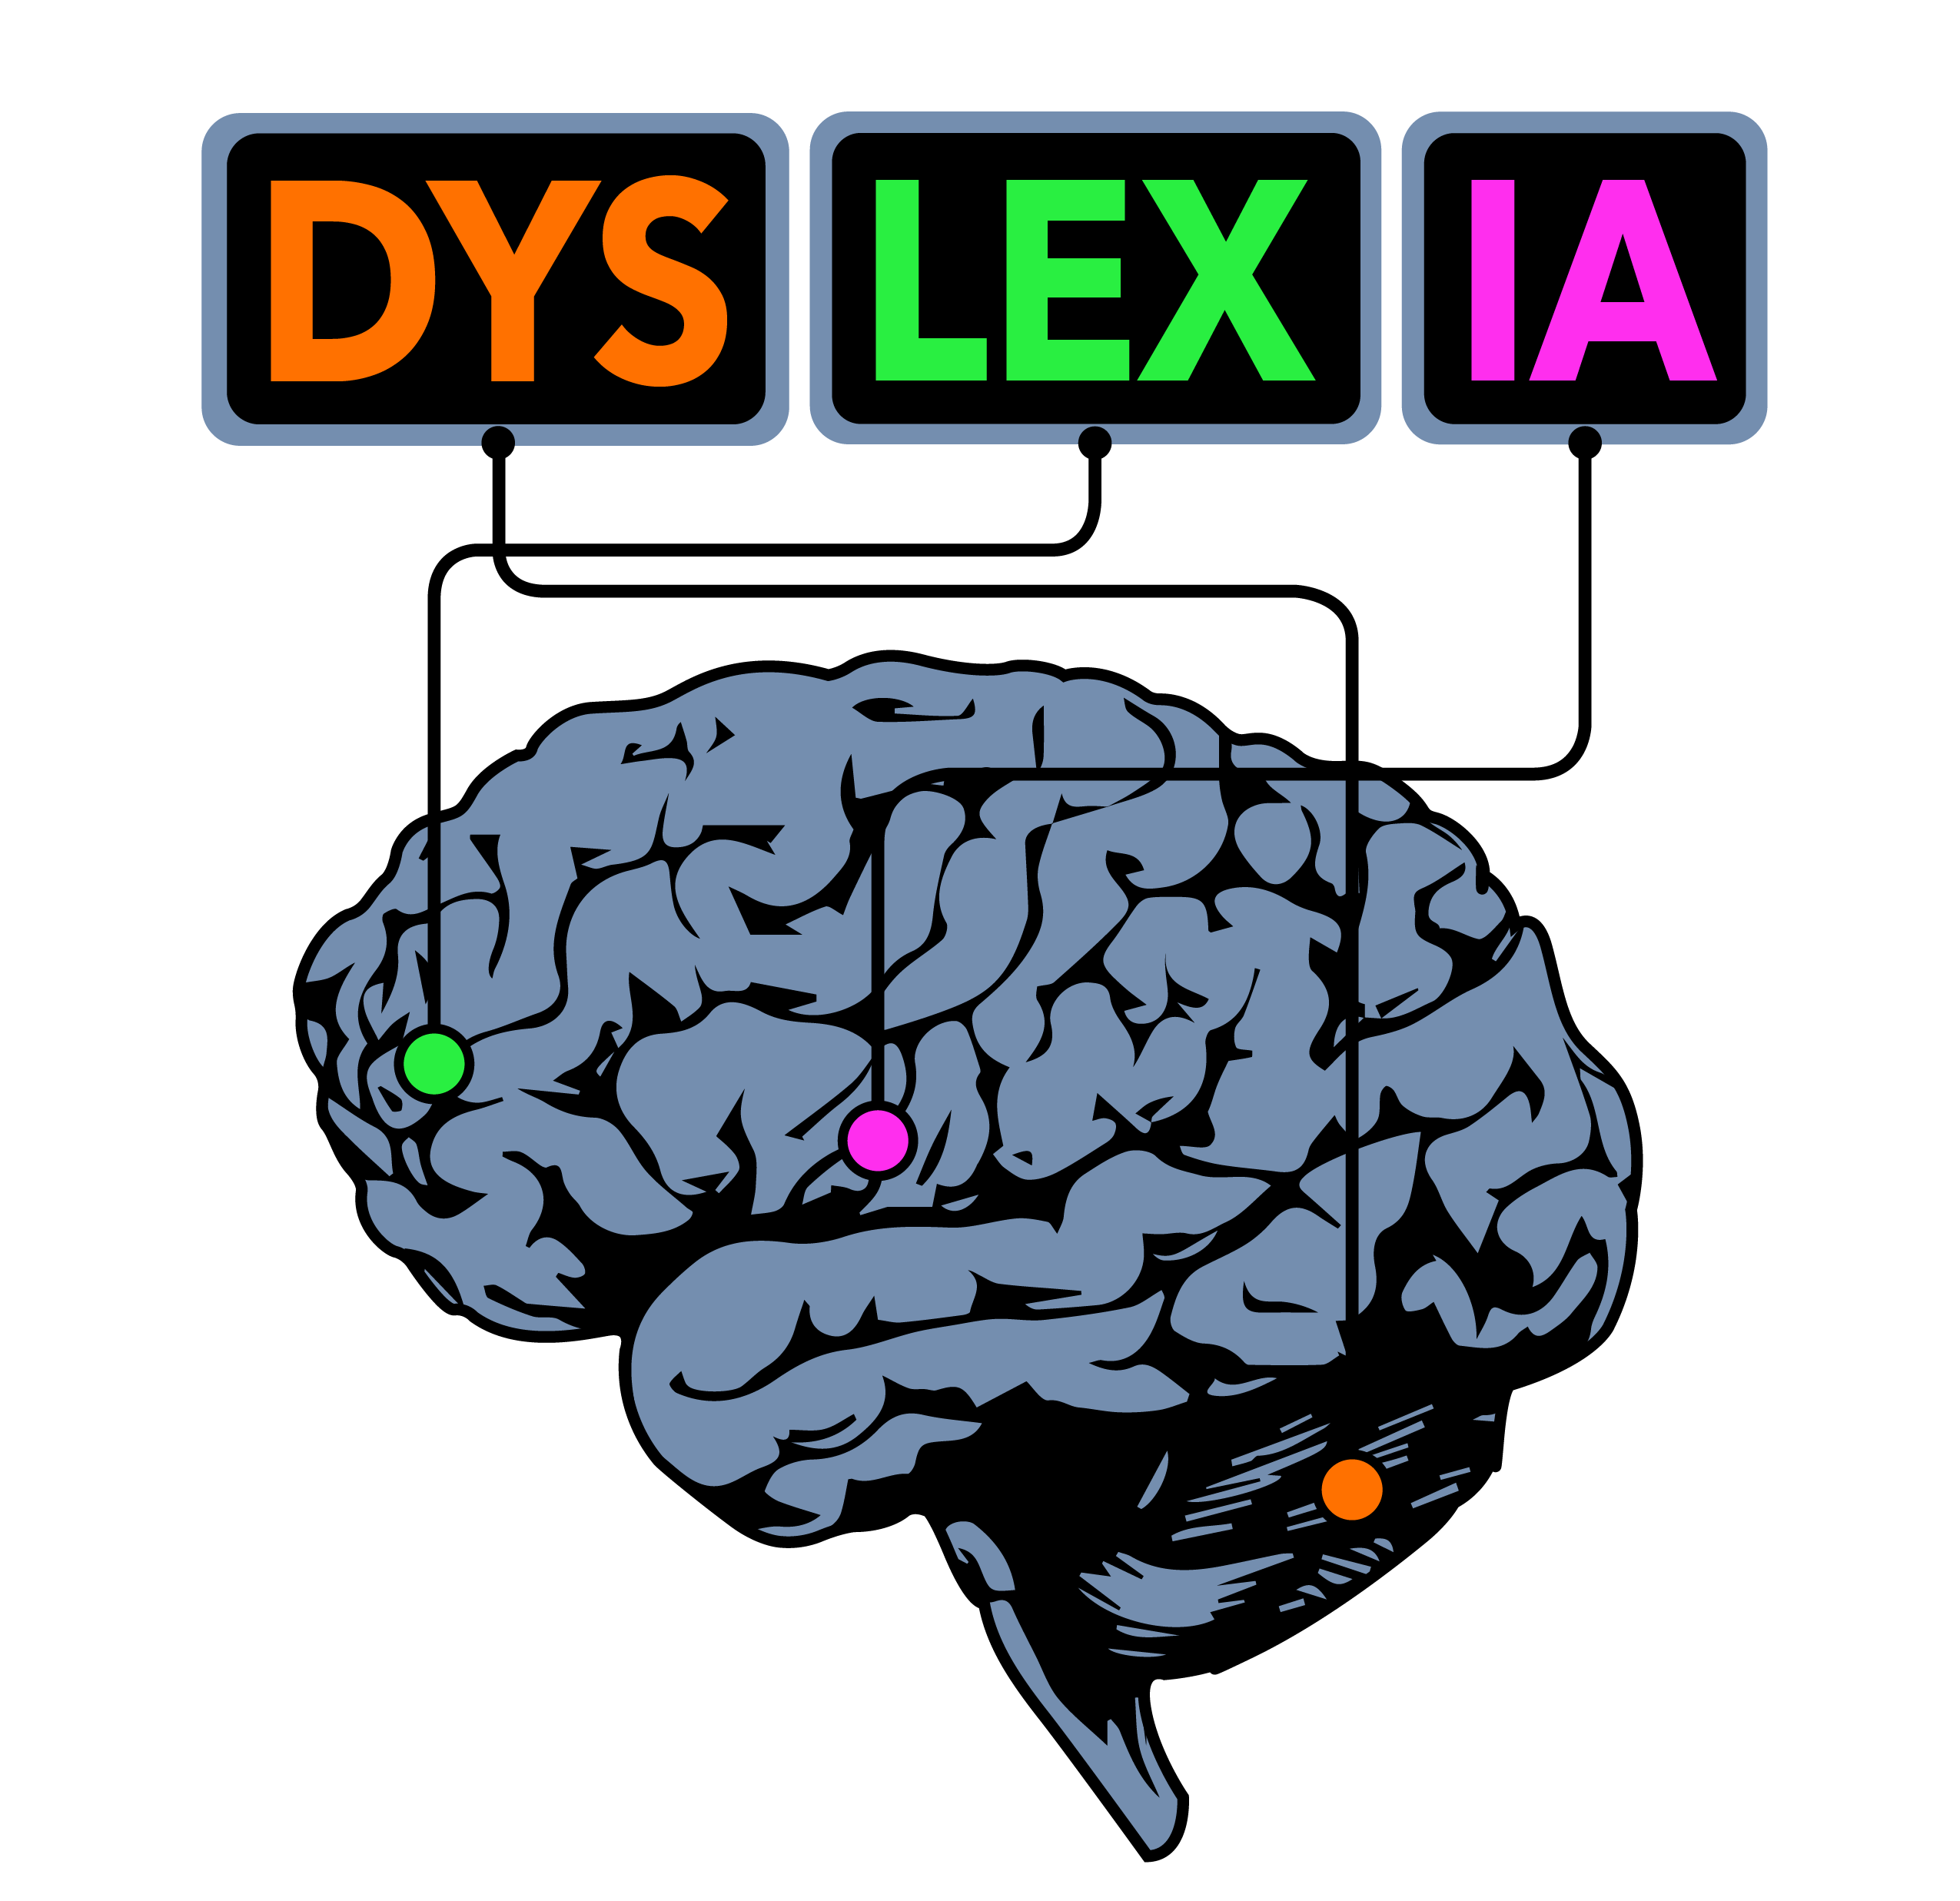 This is a title image that shows an illustrated brain with various lines pointing to different areas of the brain. The lines point to the word dyslexia at the top of the page.